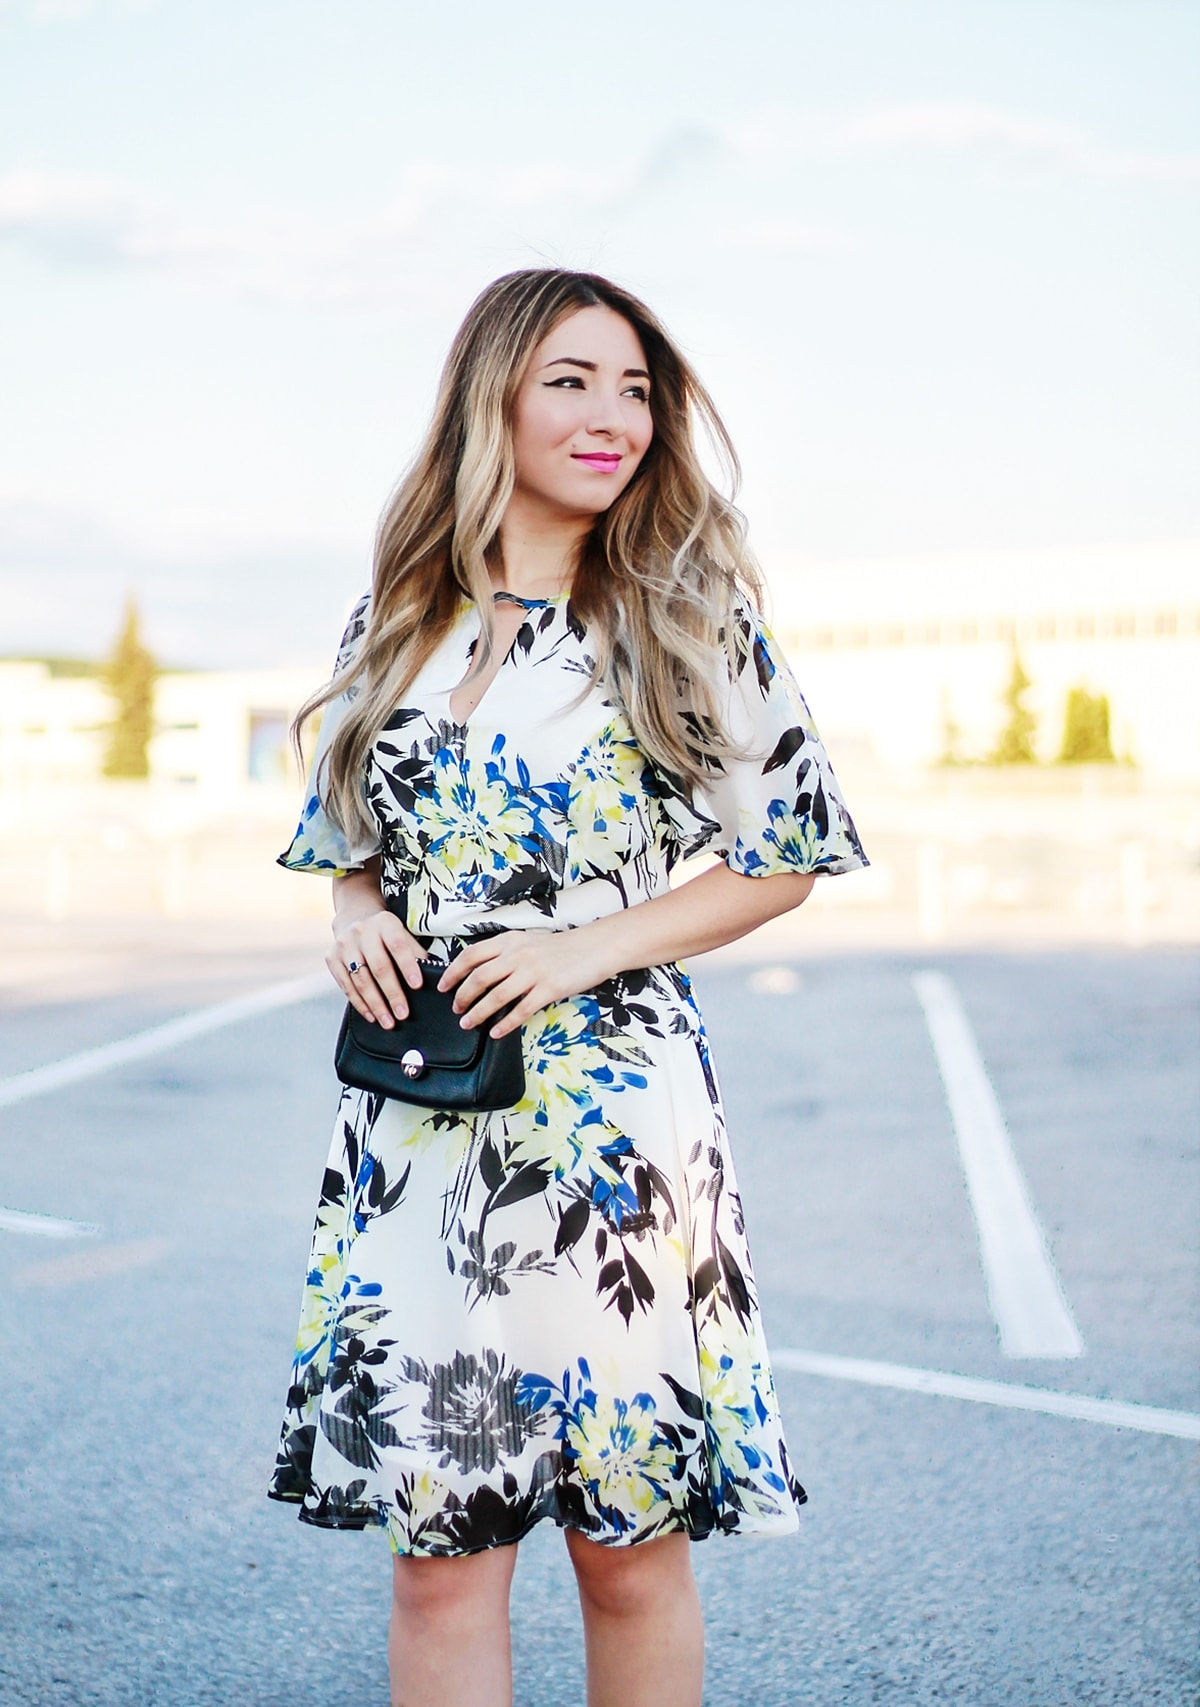 Street style: floral print dress, white, black, blue and yellow, summer look, elegant, blogger, black bag, andreea ristea, fashion blogger